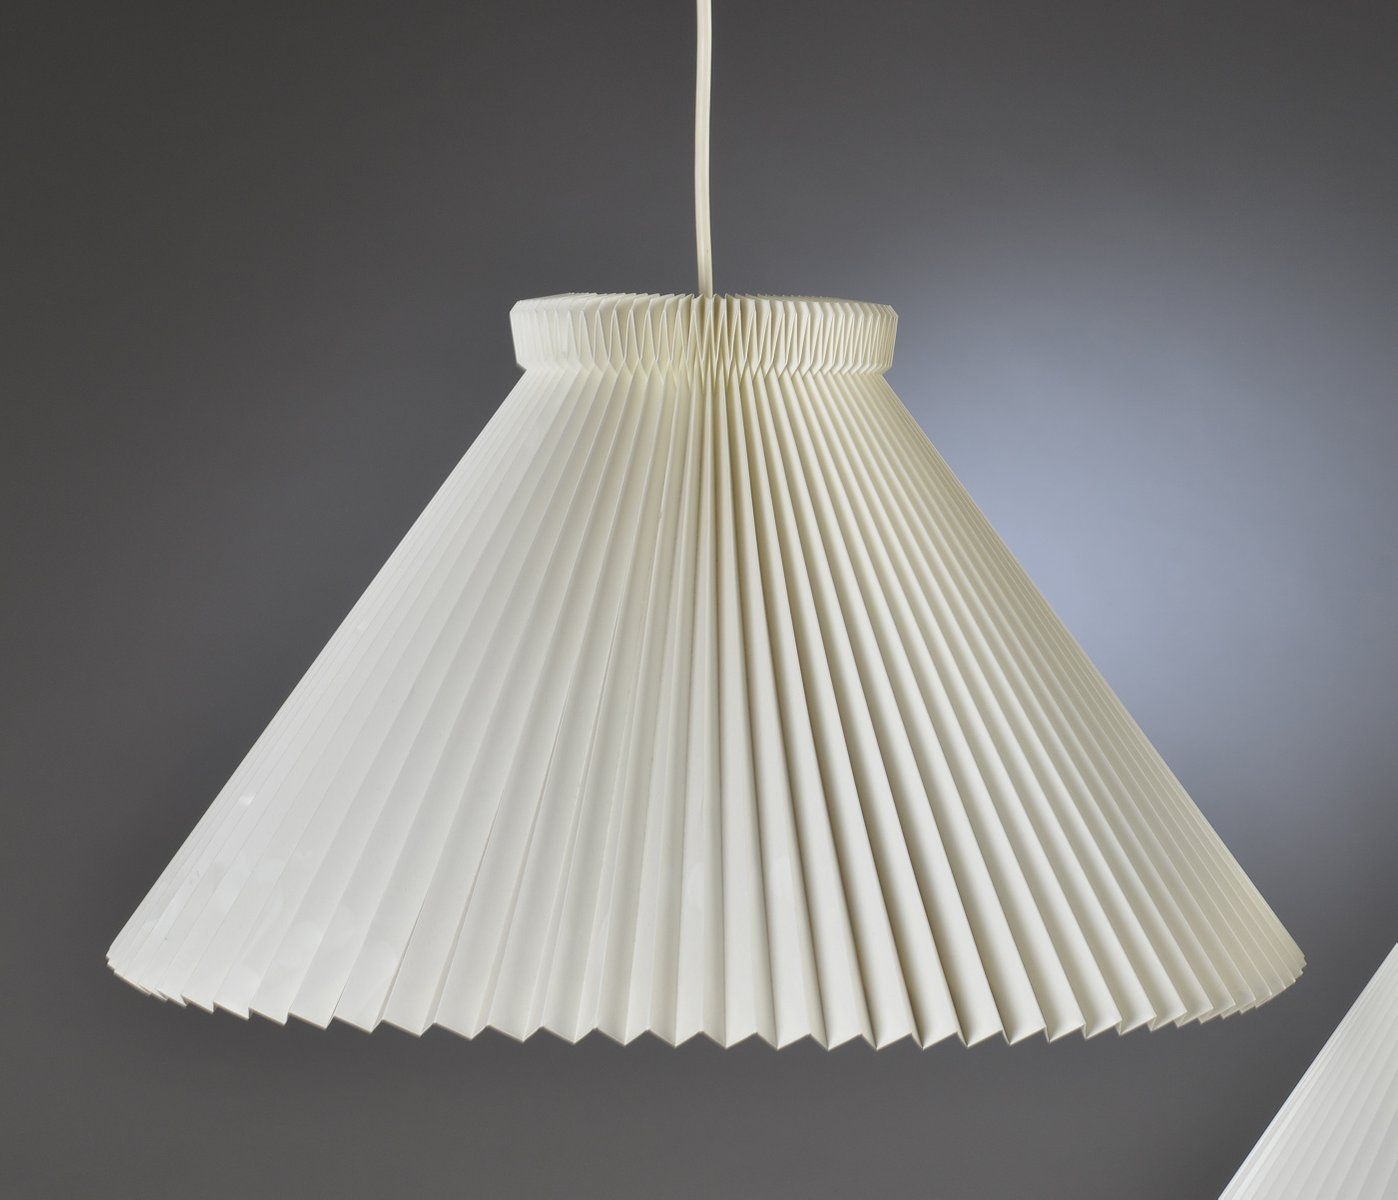 MidCentury Fan Shade Pendant by Kaare Klint for Le klint for sale